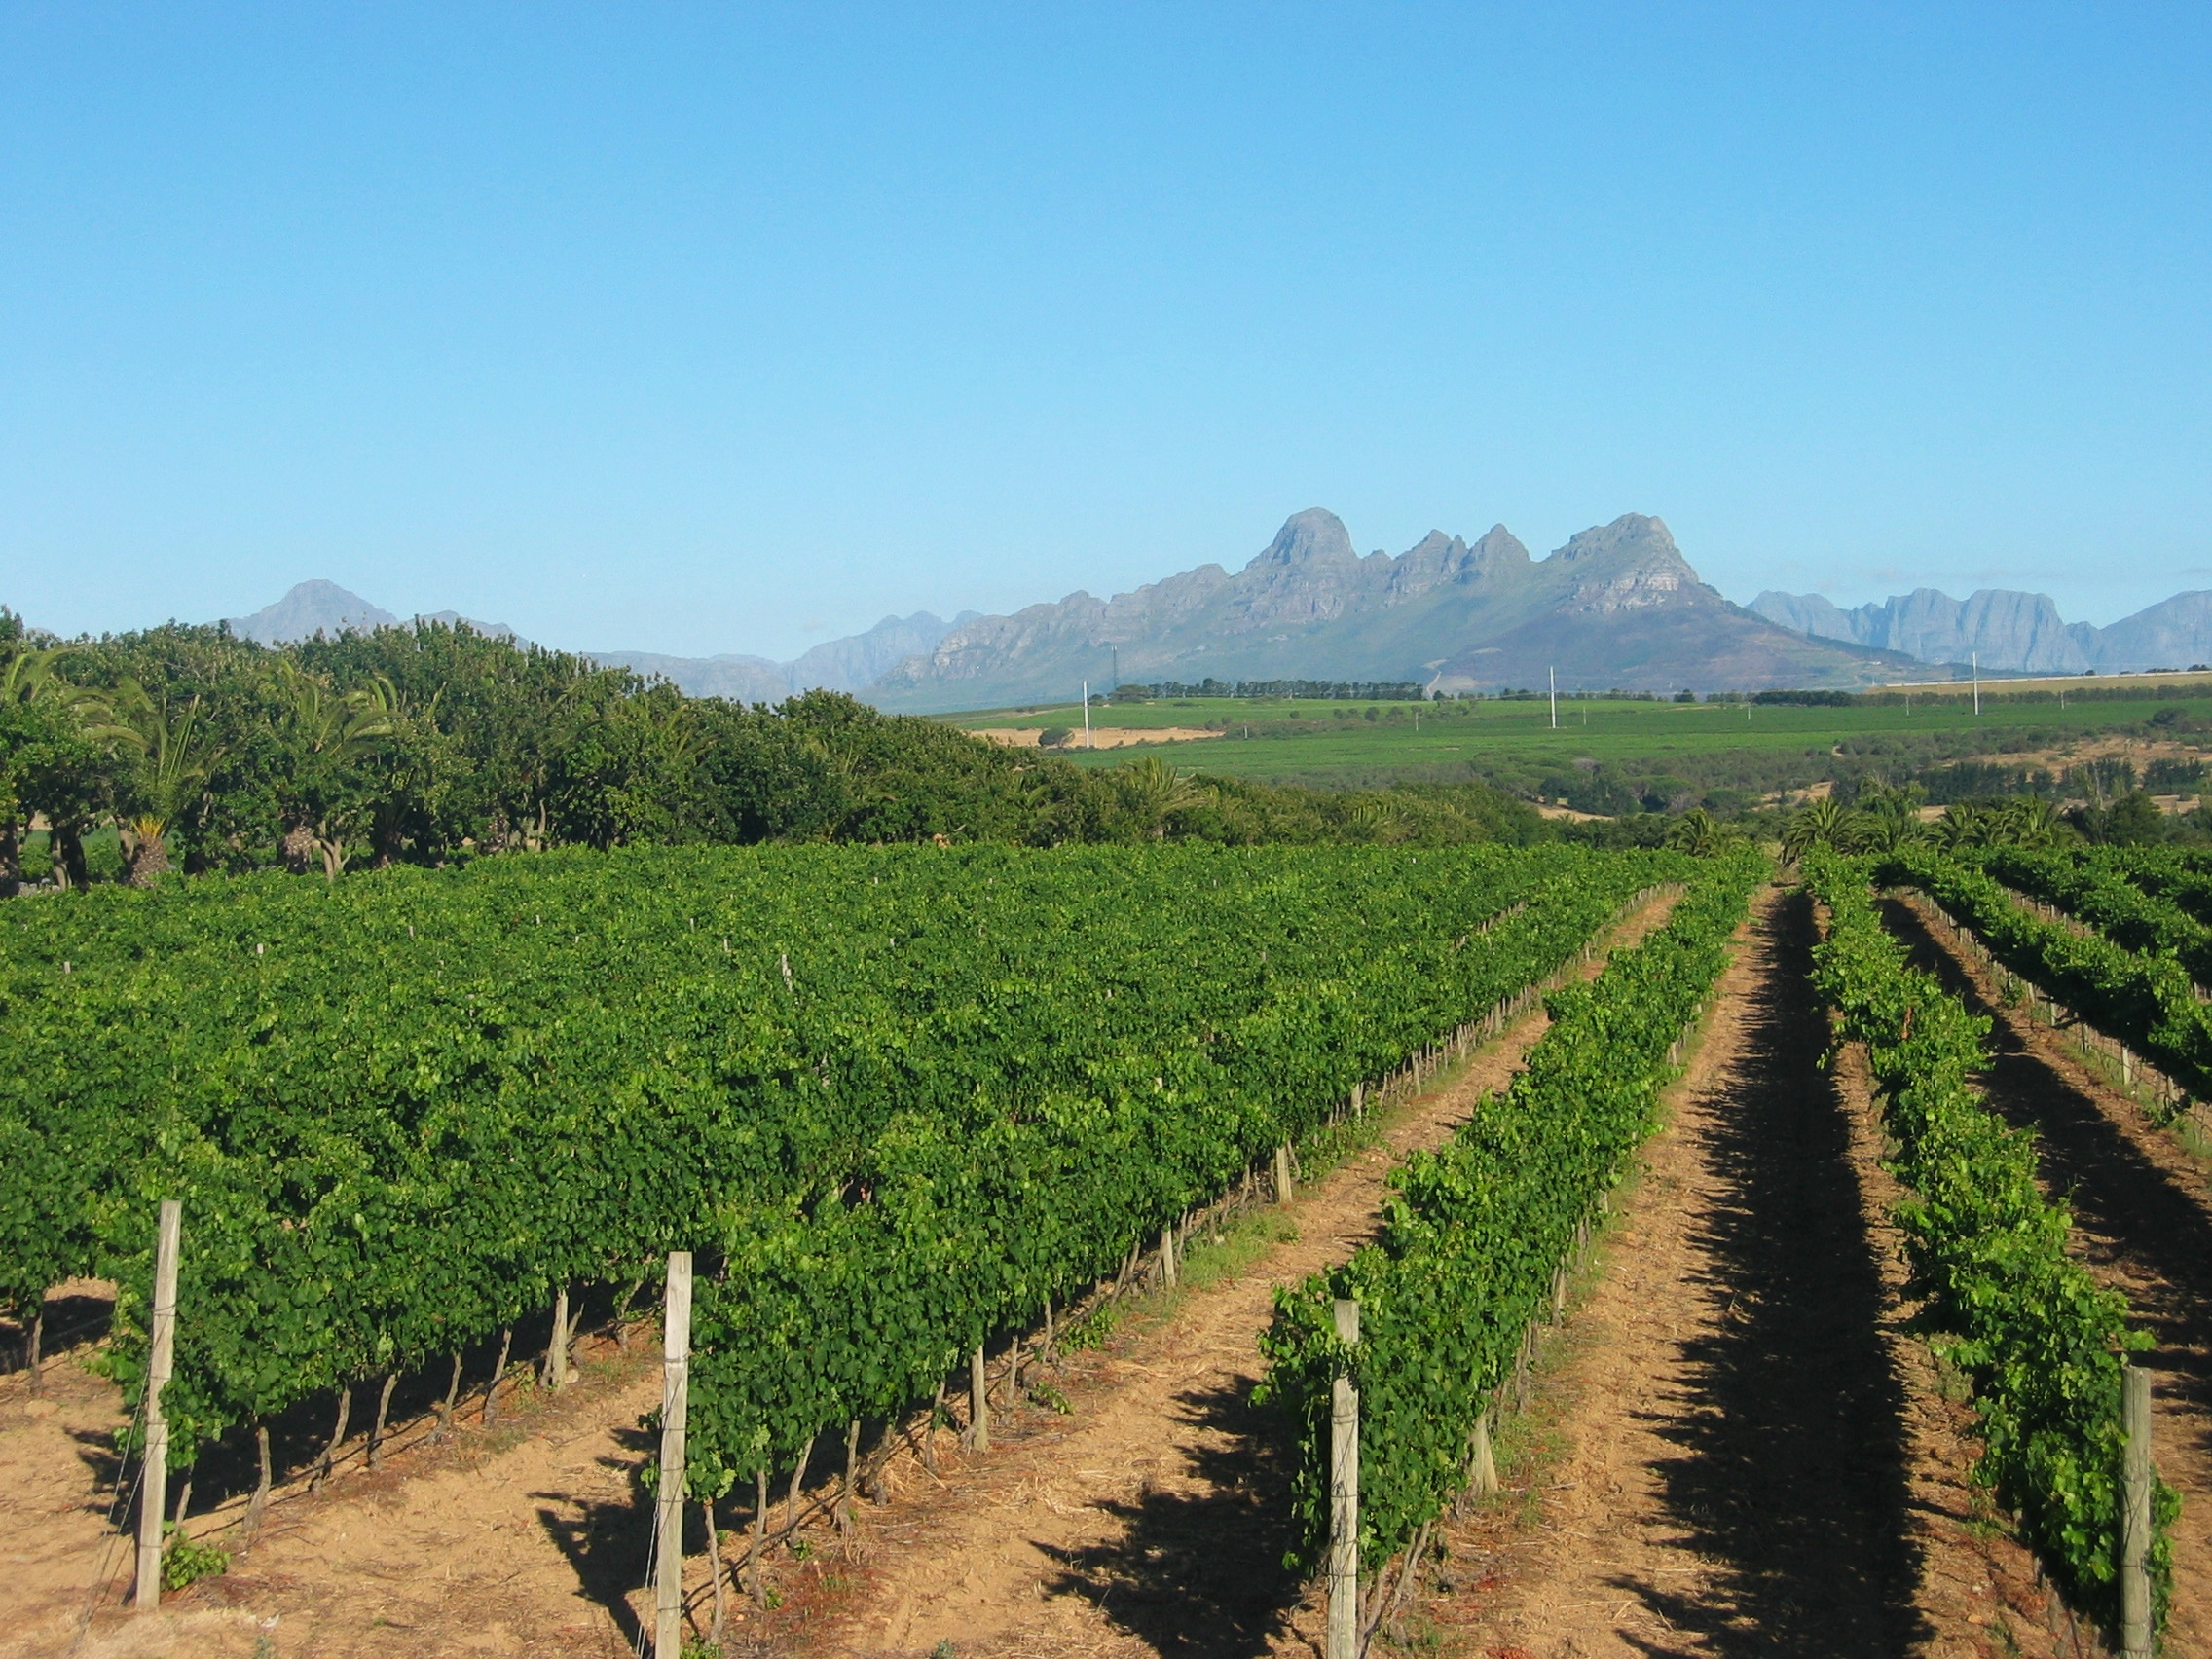 http://upload.wikimedia.org/wikipedia/commons/1/18/Stellenbosch_Vineyard.jpg